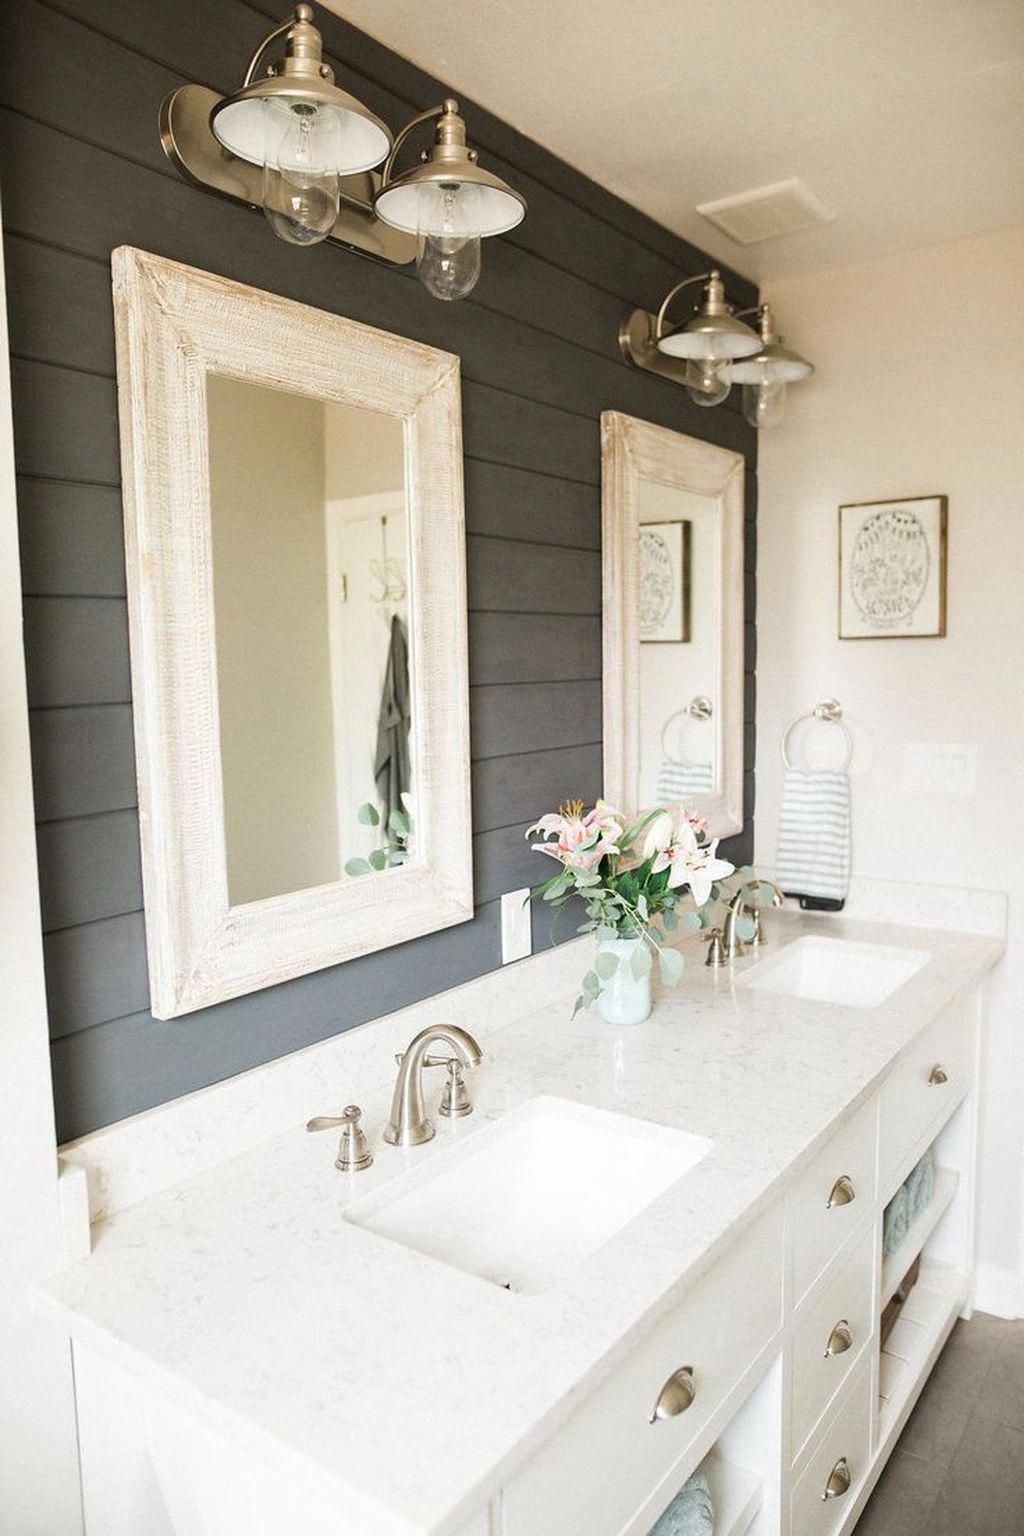 Regardless of the truth that different restroom renovating tasks often call for different tools, you will find that some tools can be utilized on almost all restroom remodeling projects. #restroomremodel